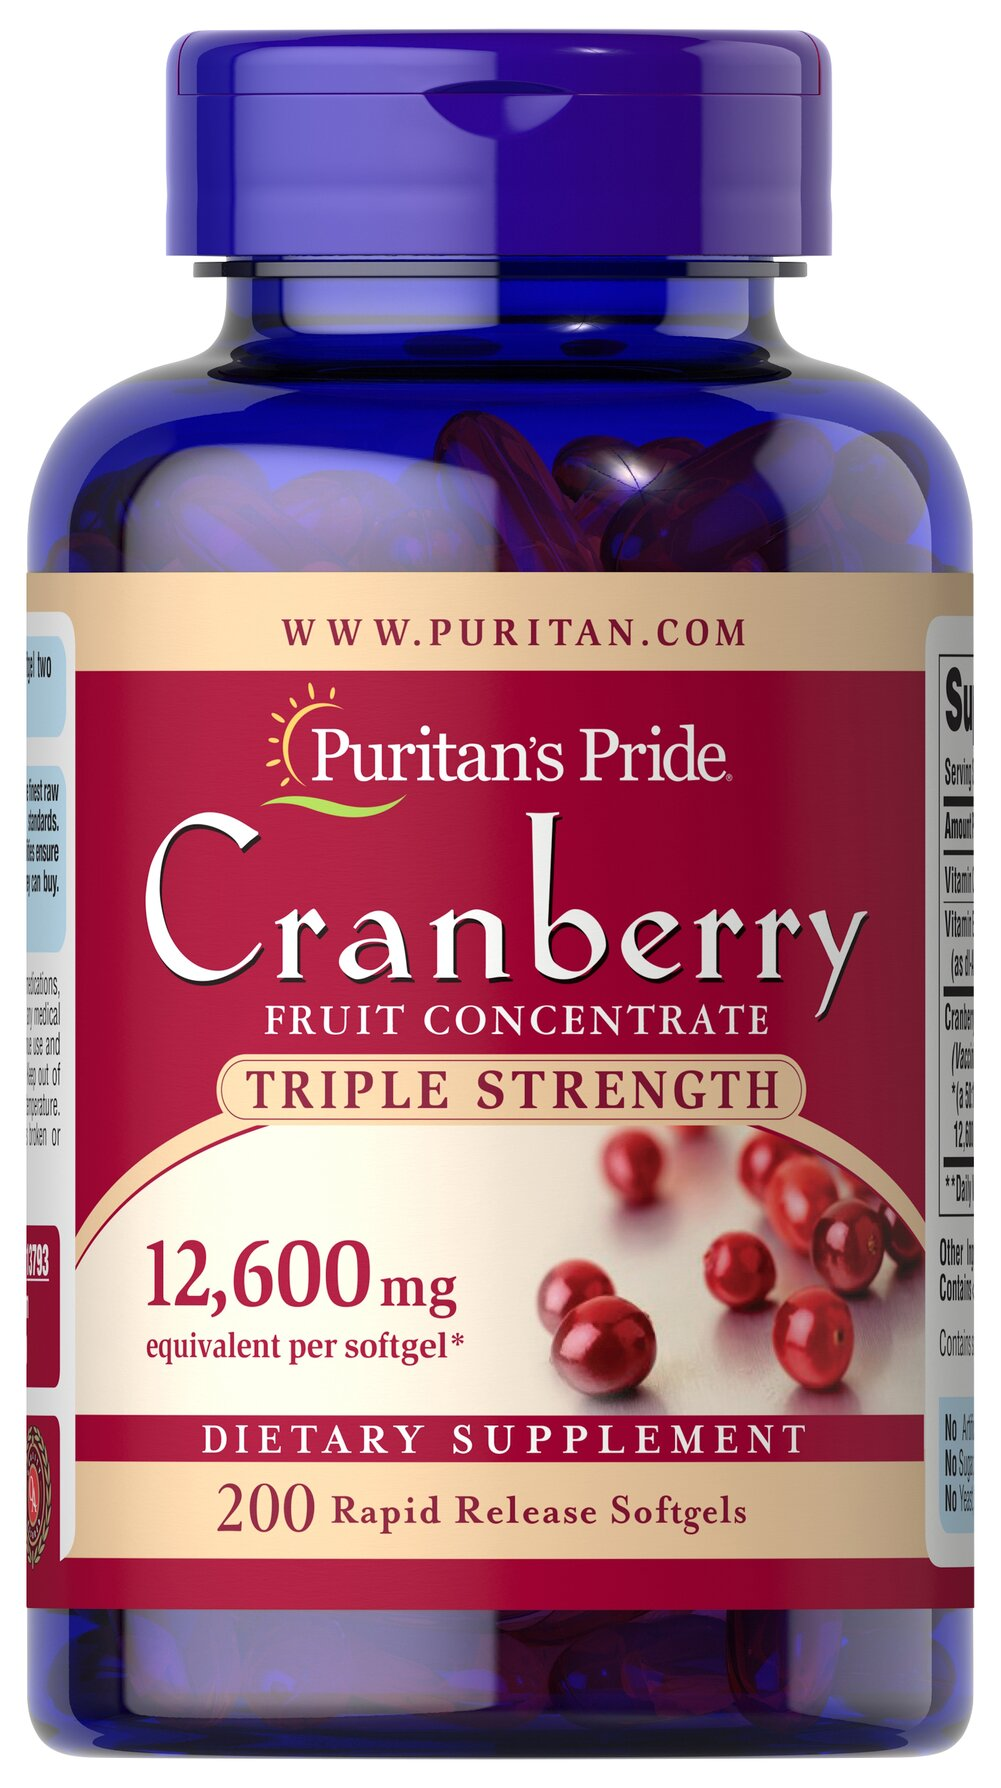 Triple Strength Cranberry Fruit Concentrate 12,600 mg <p>Supports Urinary and Immune System Health**</p><p>Triple Strength Cranberry Concentrate contains 12,600 mg of cranberry concentrate per serving.</p><p>Cranberries contain the nutritional benefits of proanthocyanidins.** This product also contains Vitamin C, an antioxidant that plays a role in supporting immune function, plus Vitamin E.**</p> 200 Softgels 12600 mg $9.99